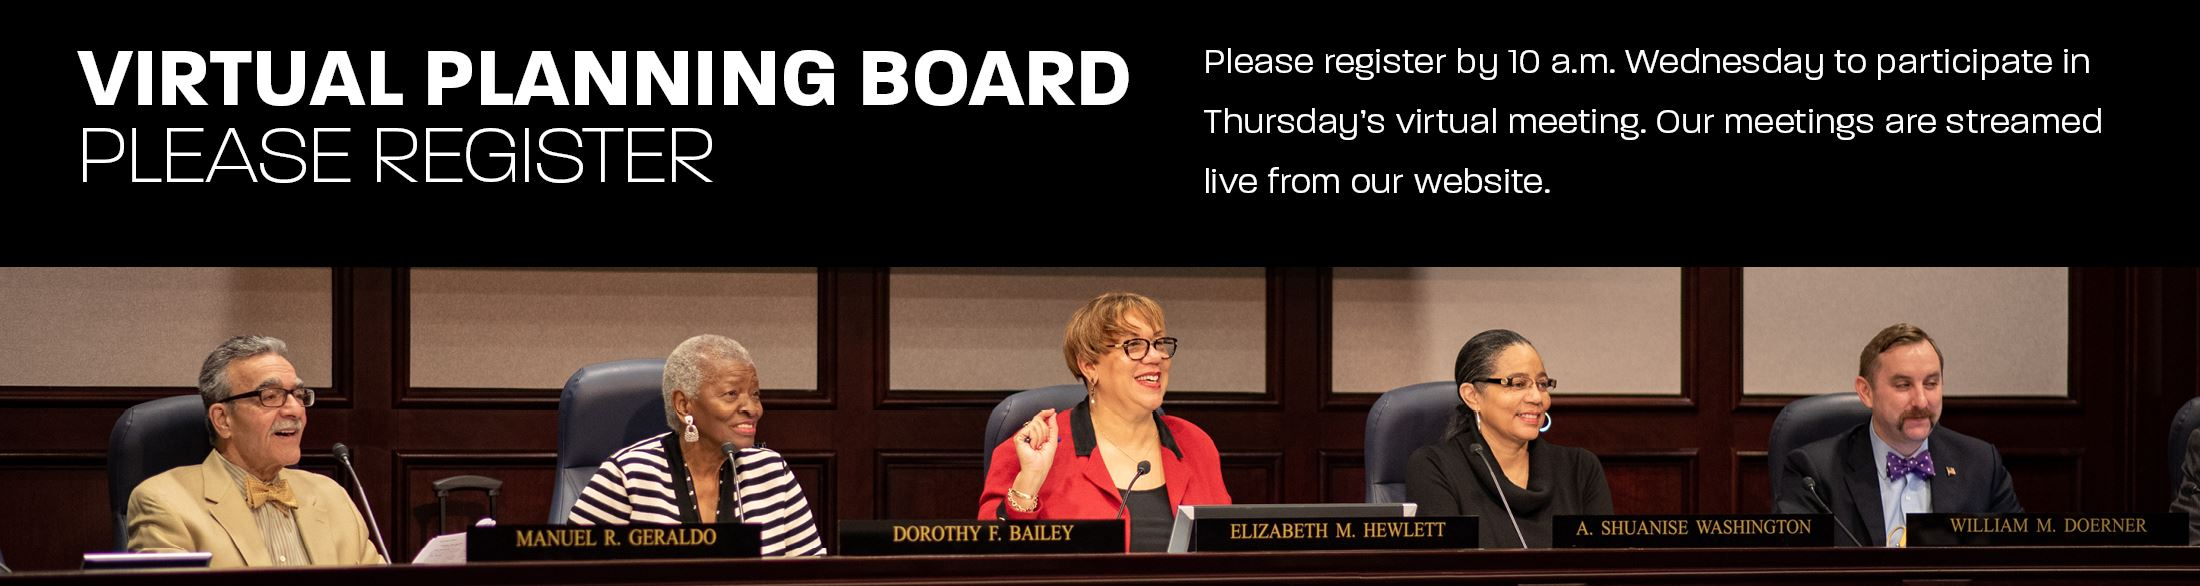 View live stream of Virtual Planning Board 3/26 session